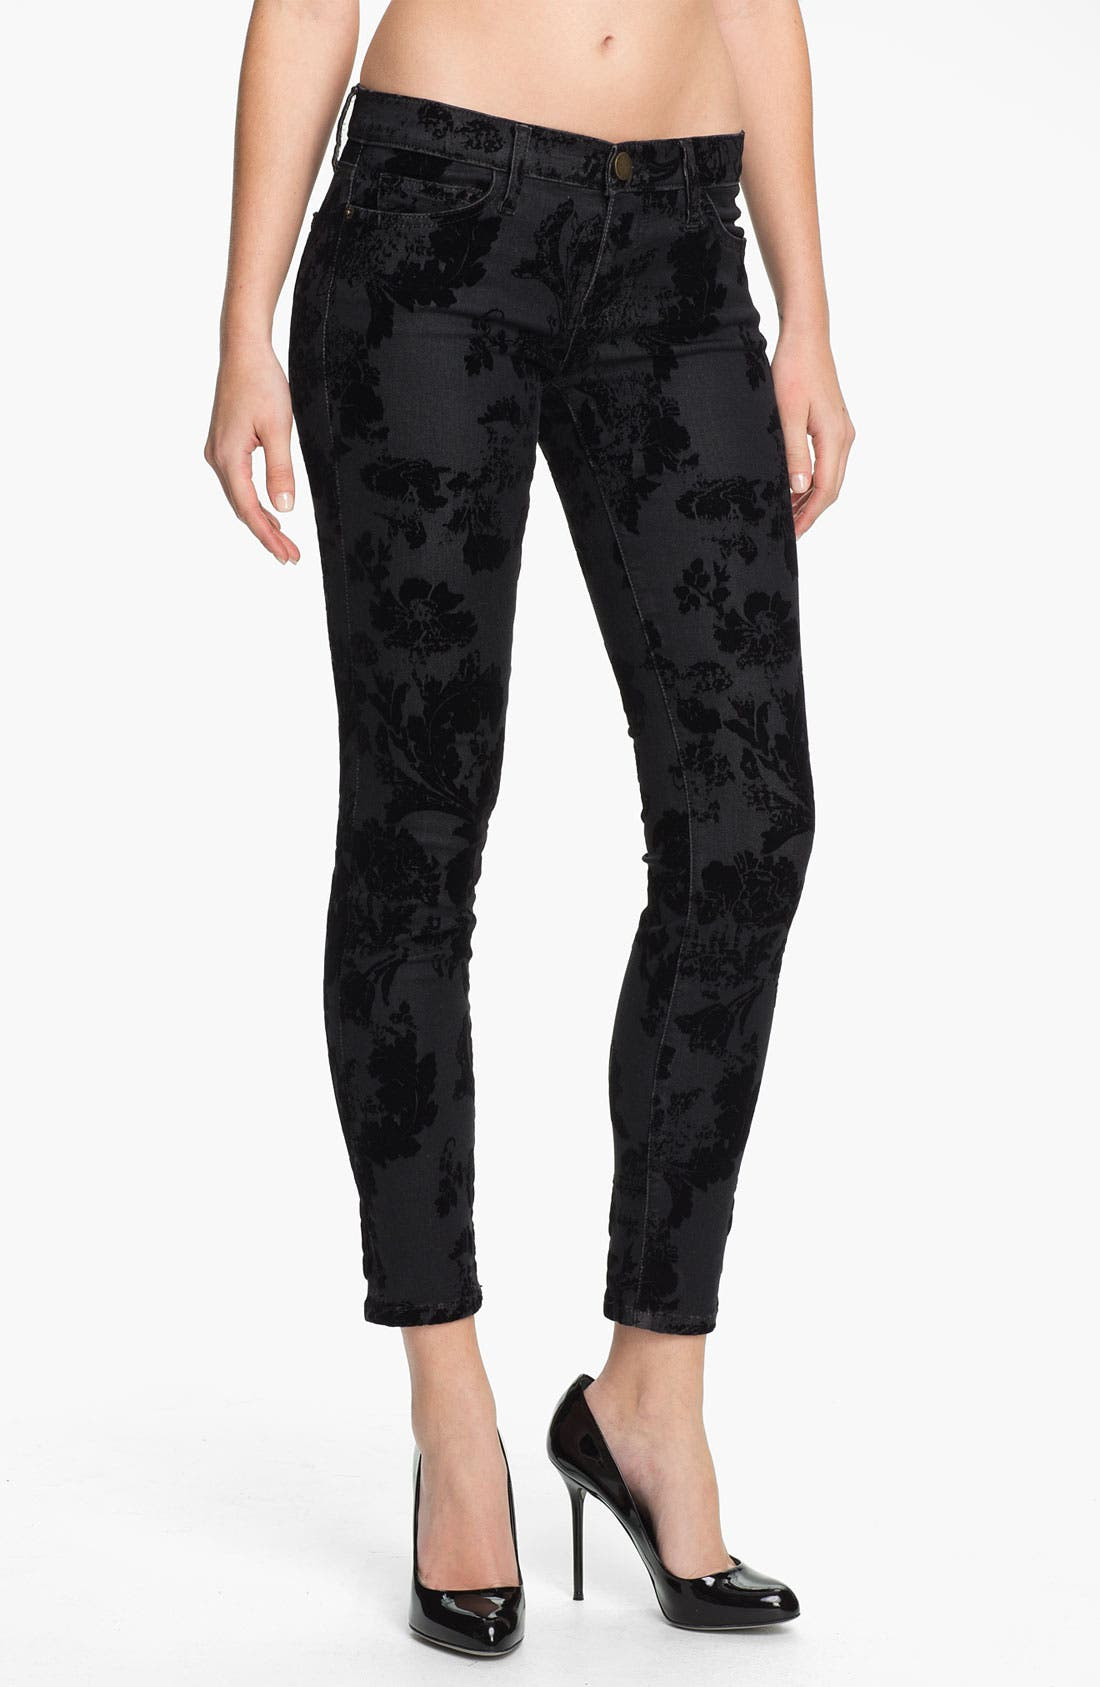 Main Image - Current/Elliott Ankle Zip Skinny Jeans (Black Velvet Floral)